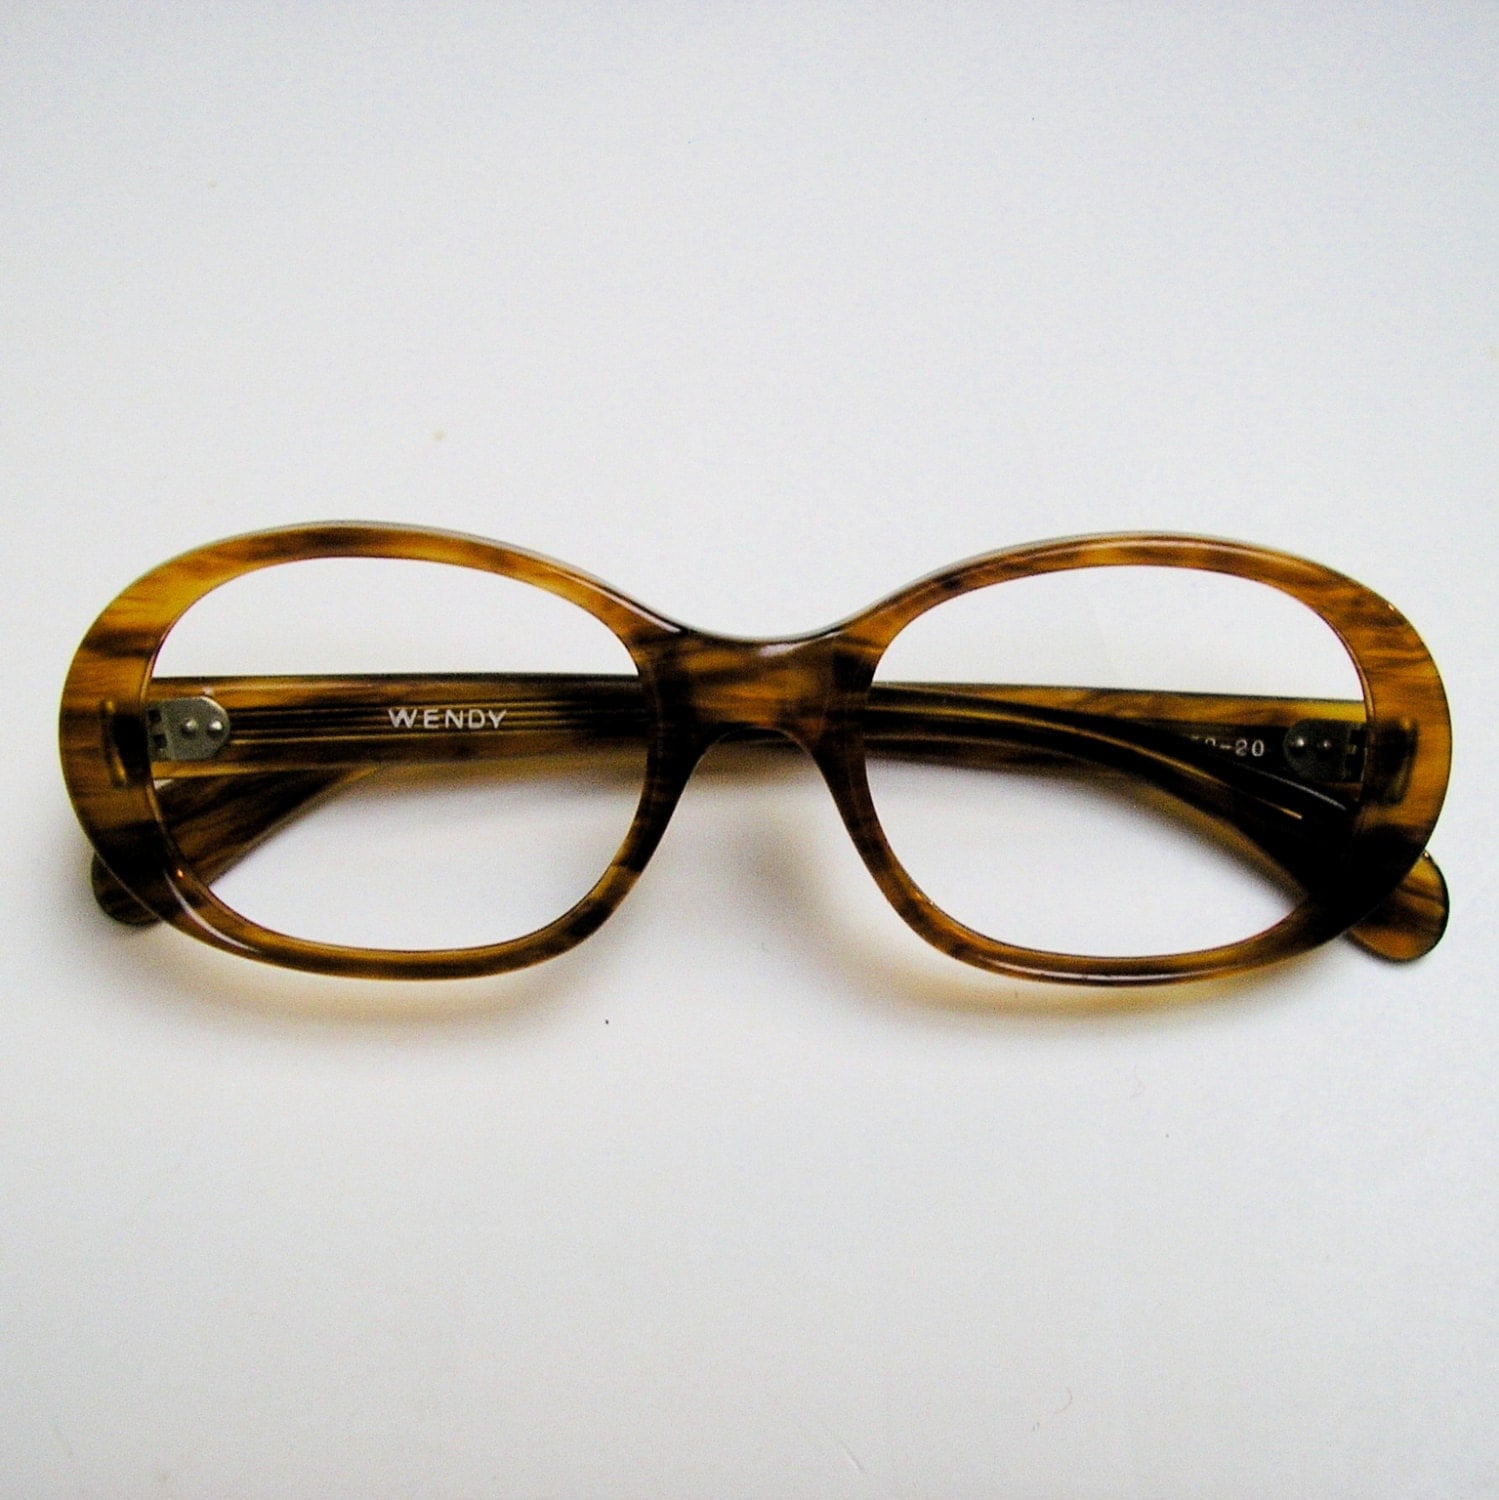 Old Eyeglass Frames New Lenses : VINTAGE EYEGLASSES: New Old Stock 1970s Butterscotch